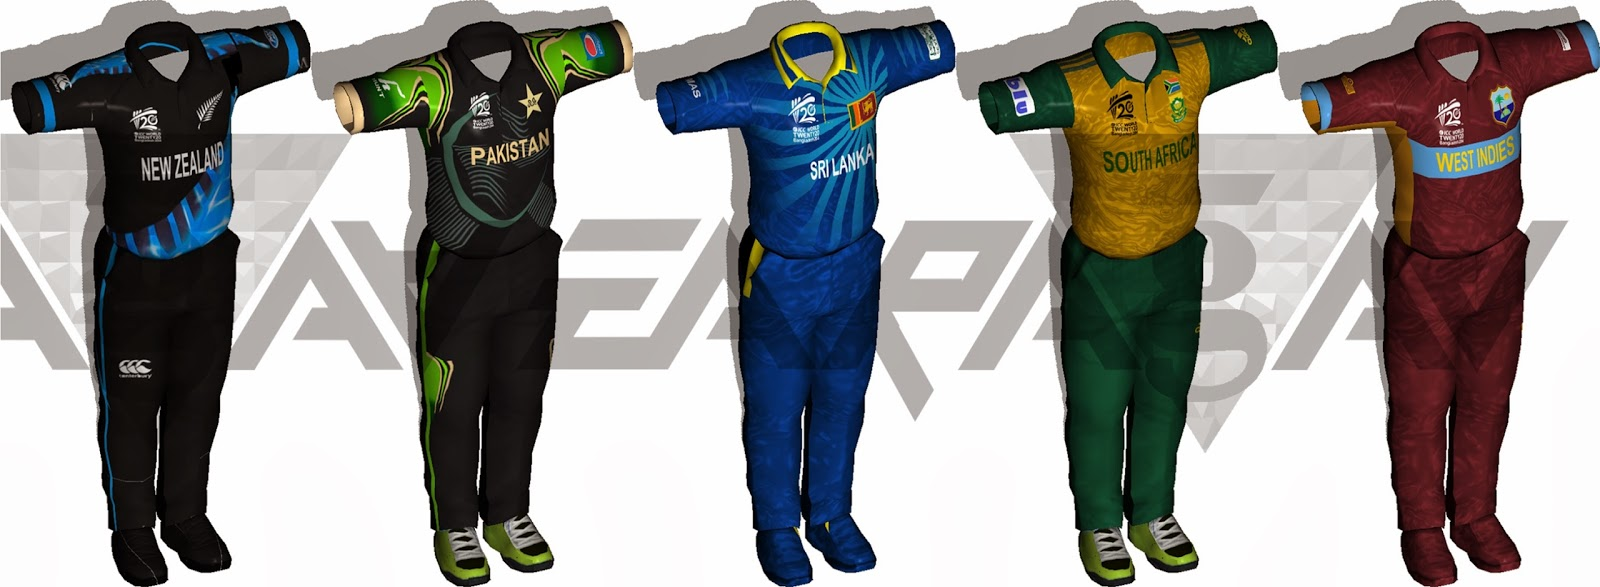 ICC T20 World Cup 2014 Kitspack for EA Cricket 07